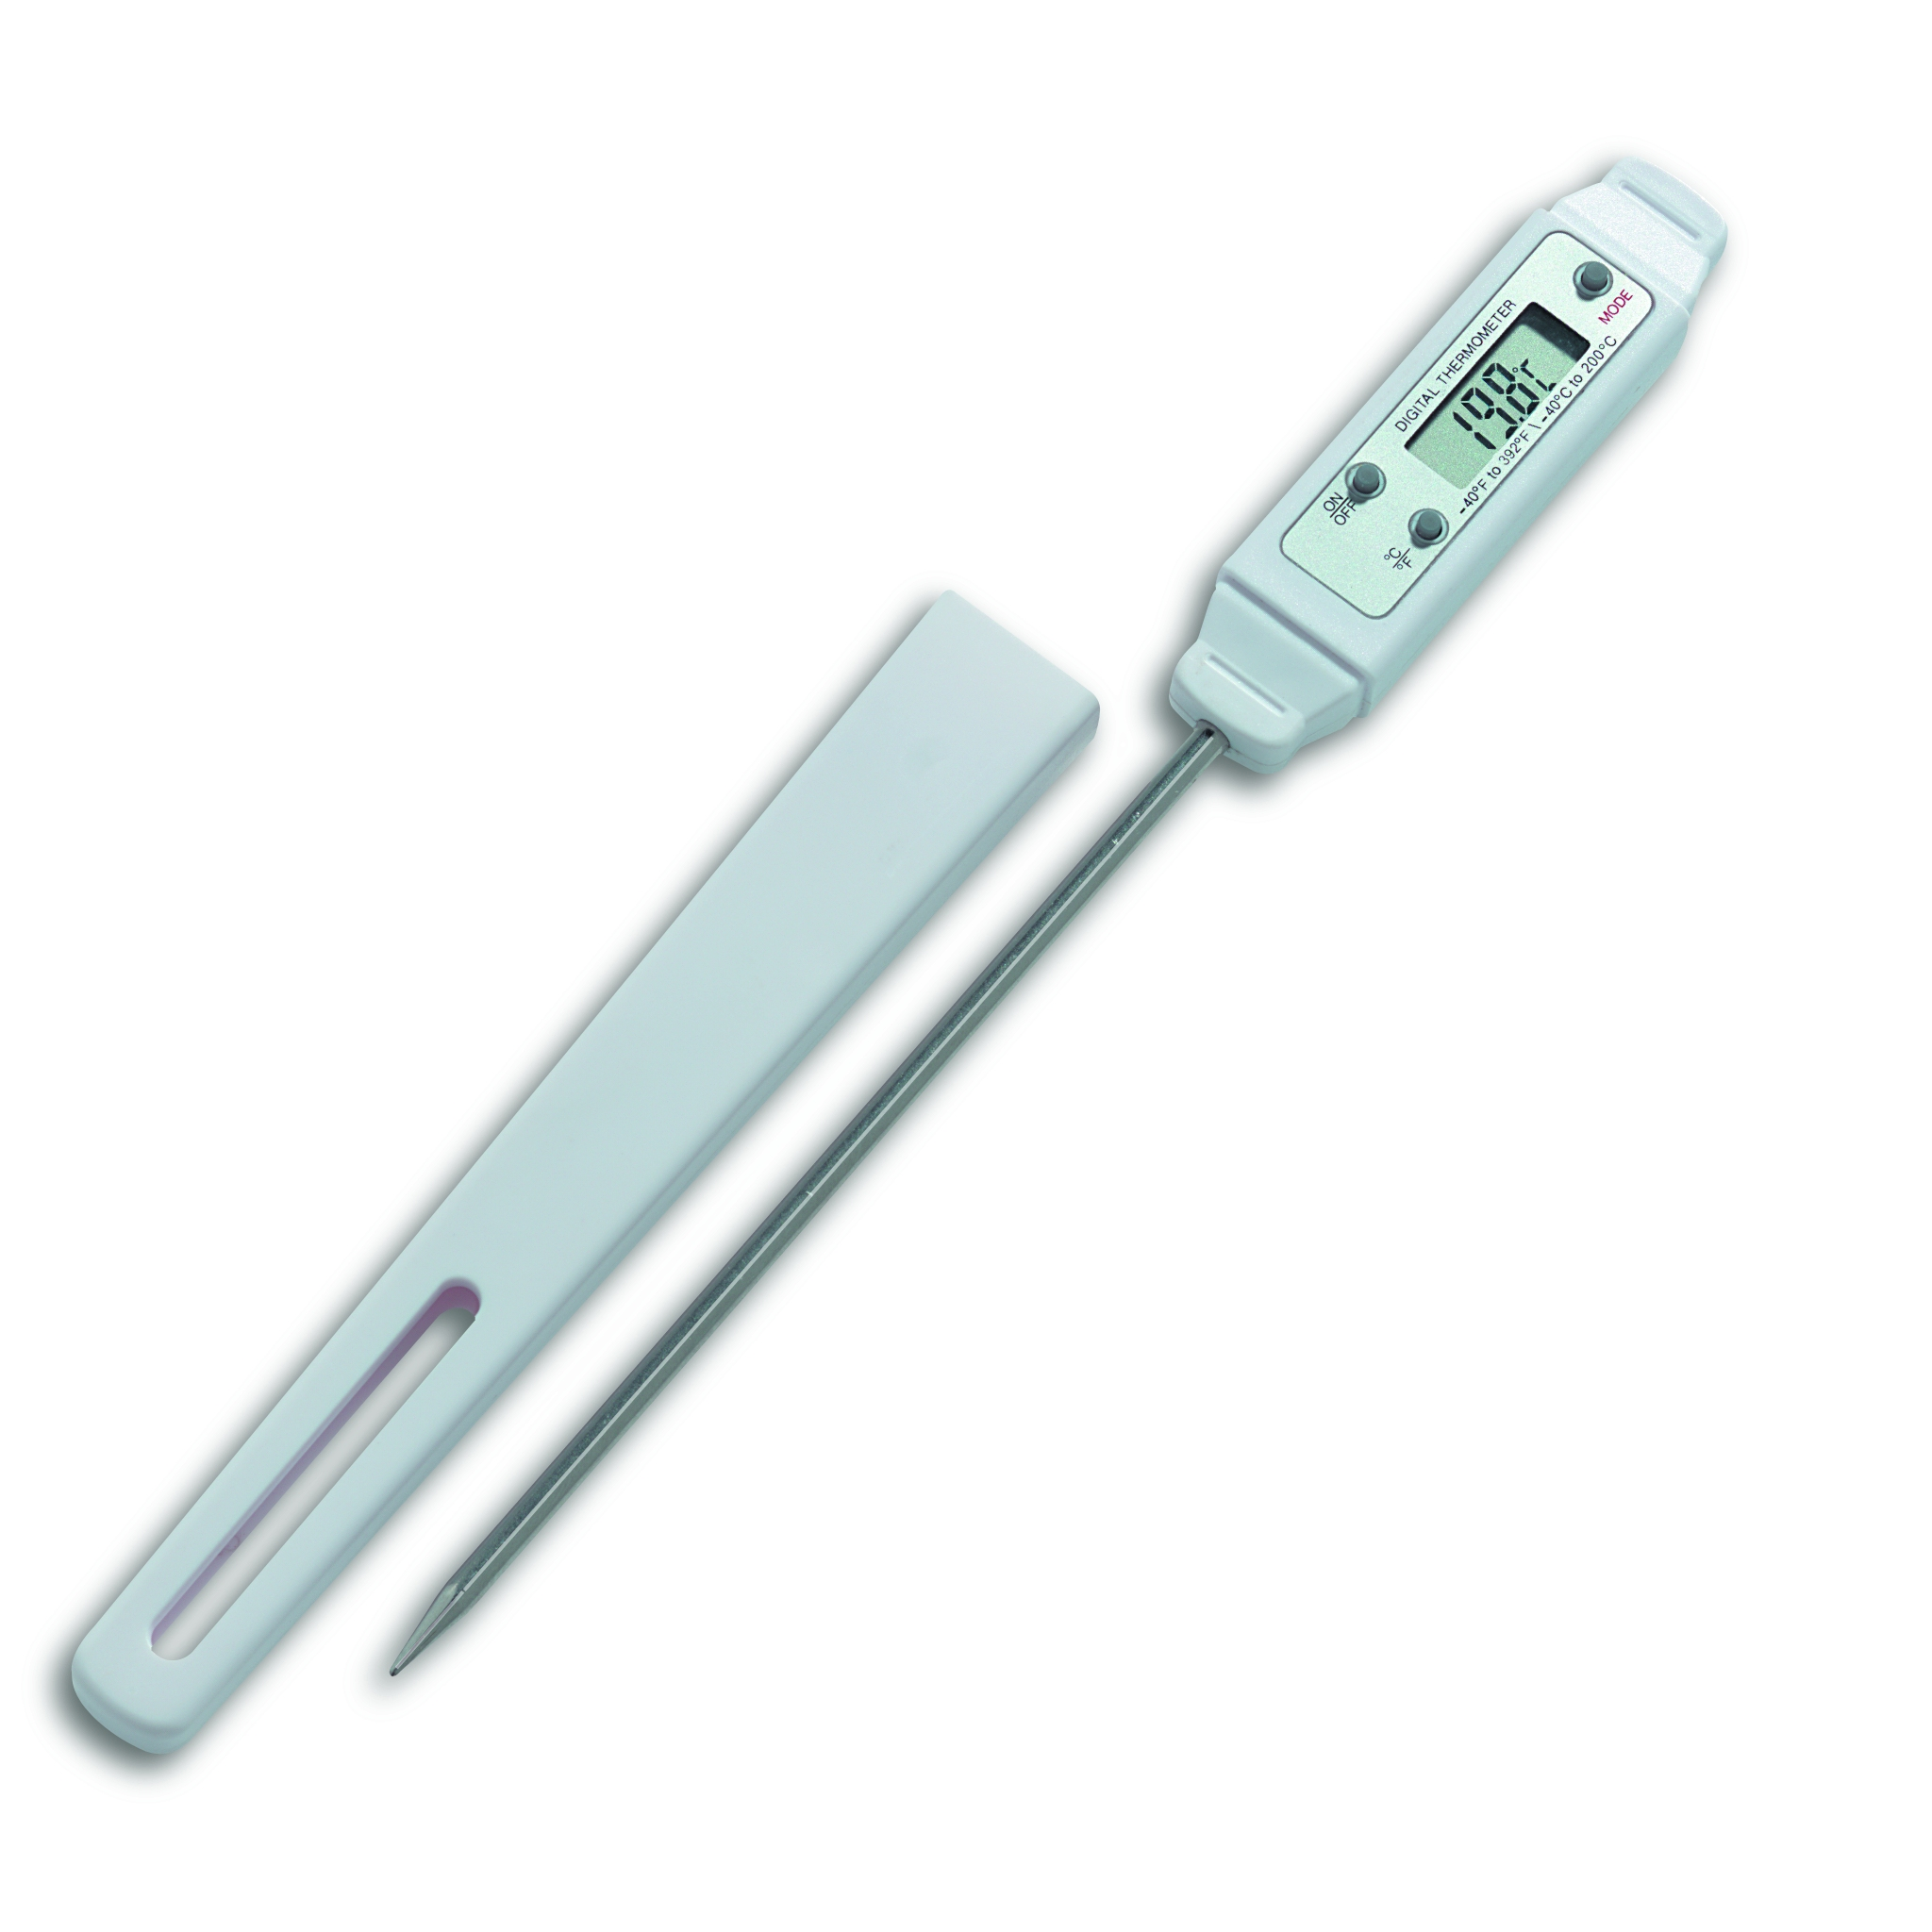 Digitale thermometer Pocket- Digitemp, lange versie (LLG9851029)